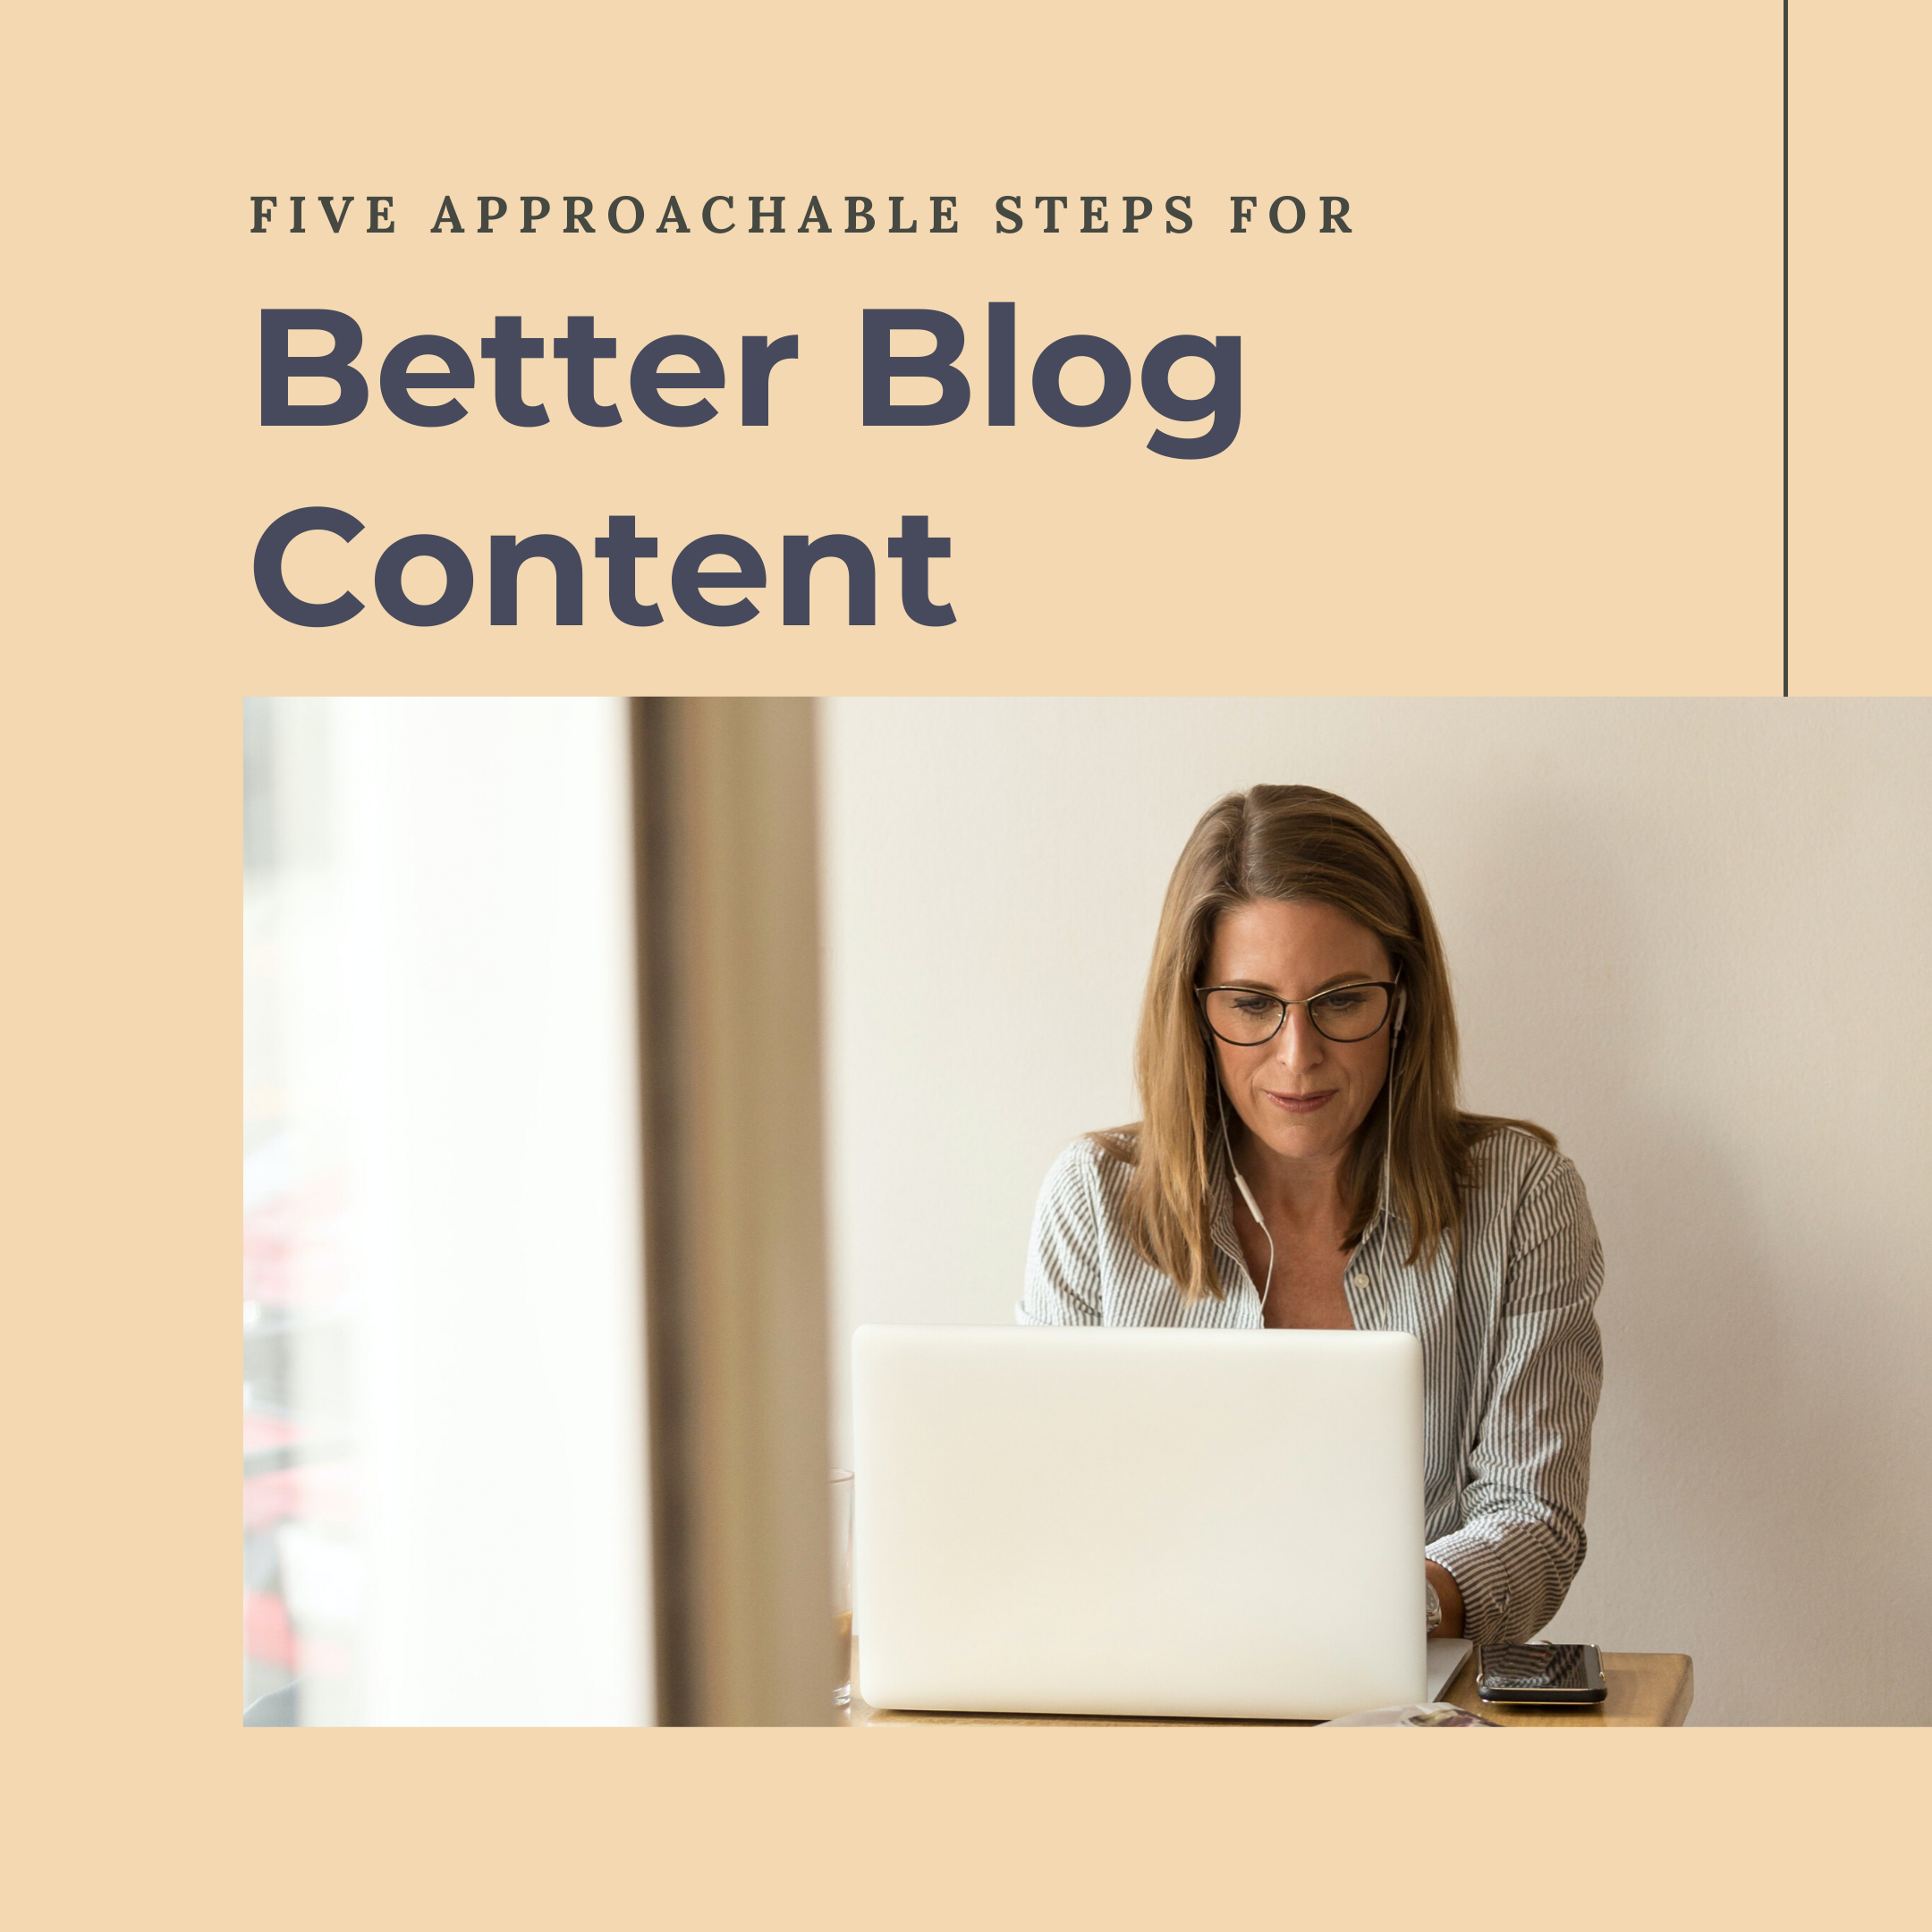 Writer creating better blogging content